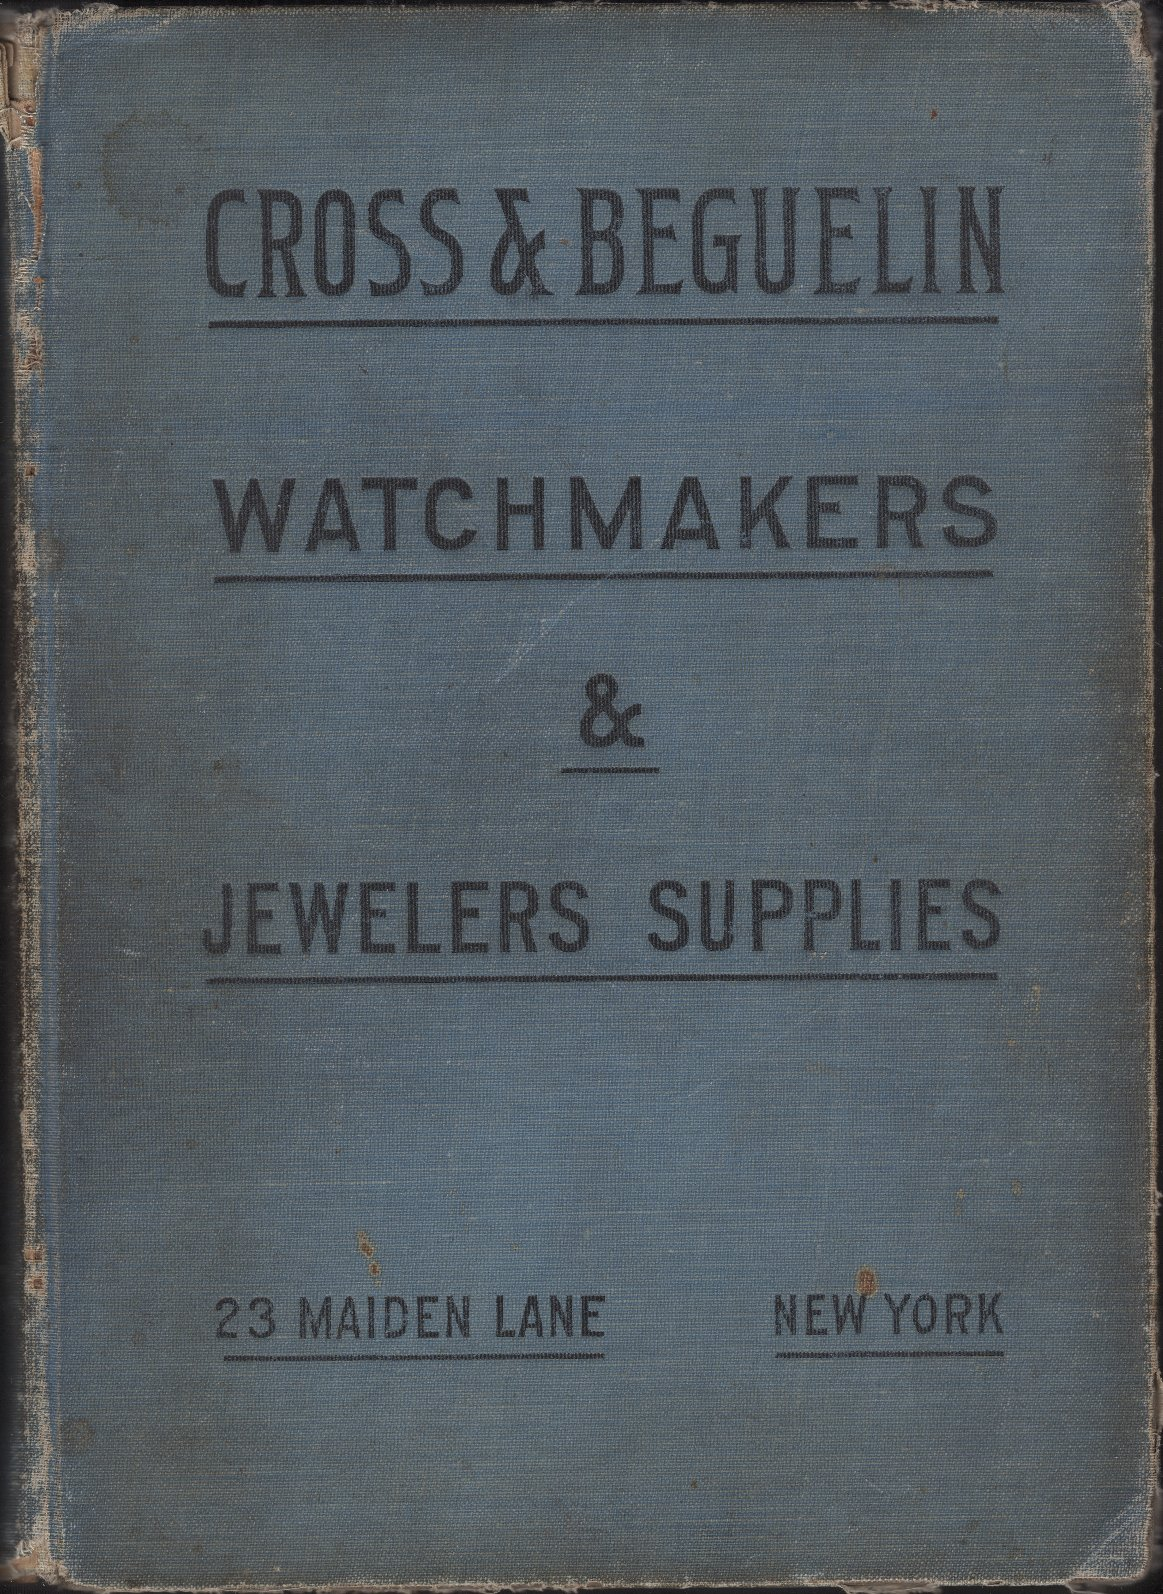 1910 Cross & Beguelin: Hamilton Parts Material Catalog Cover Image